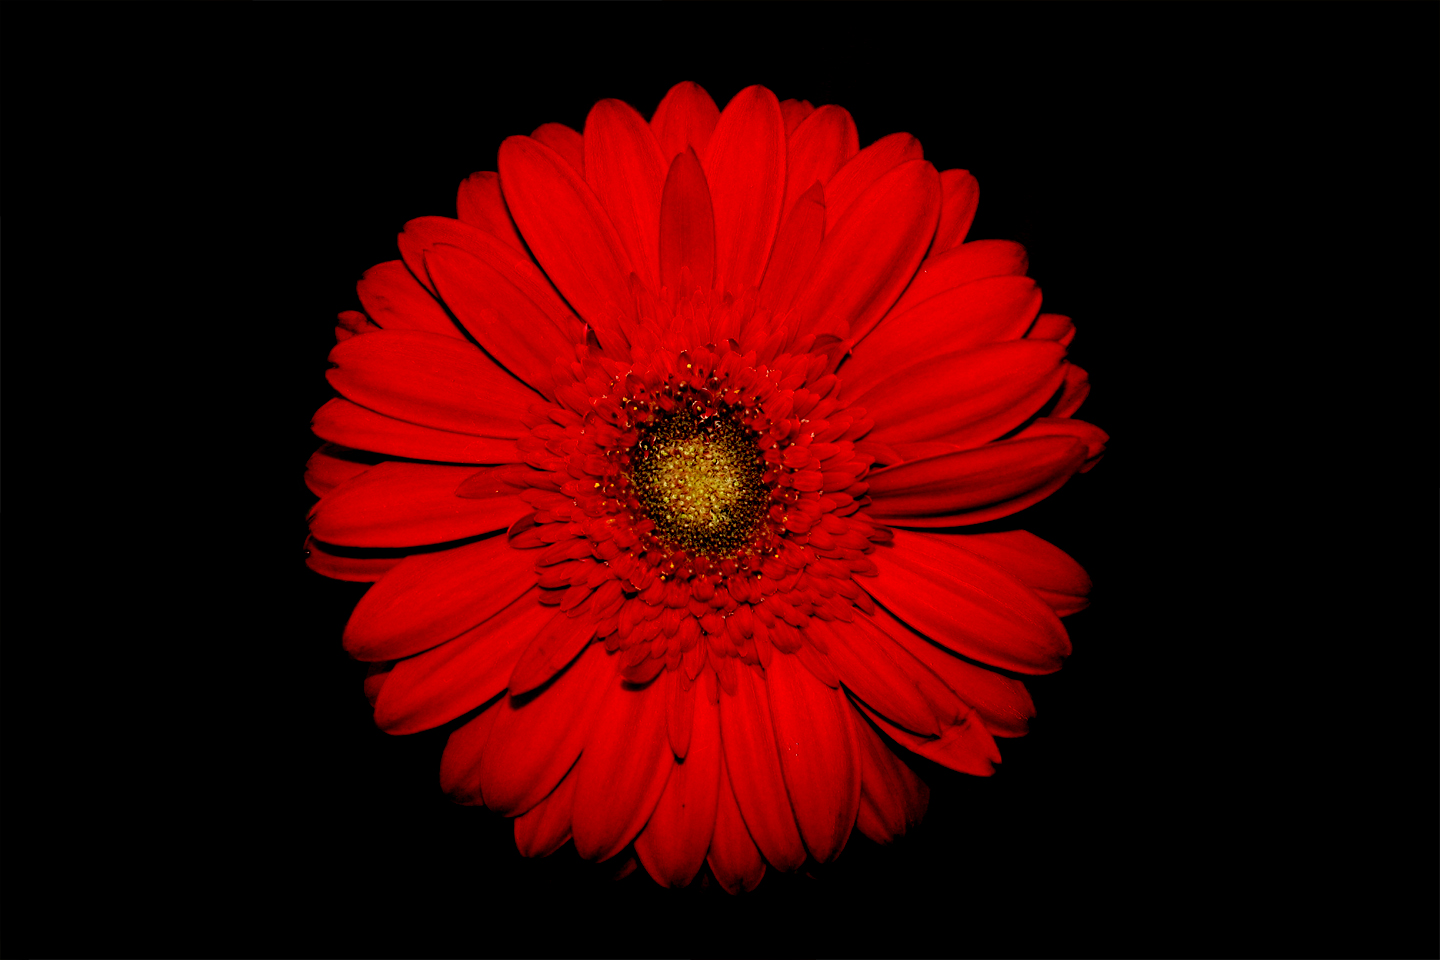 Red Flower Wallpaper 1440x960 78403